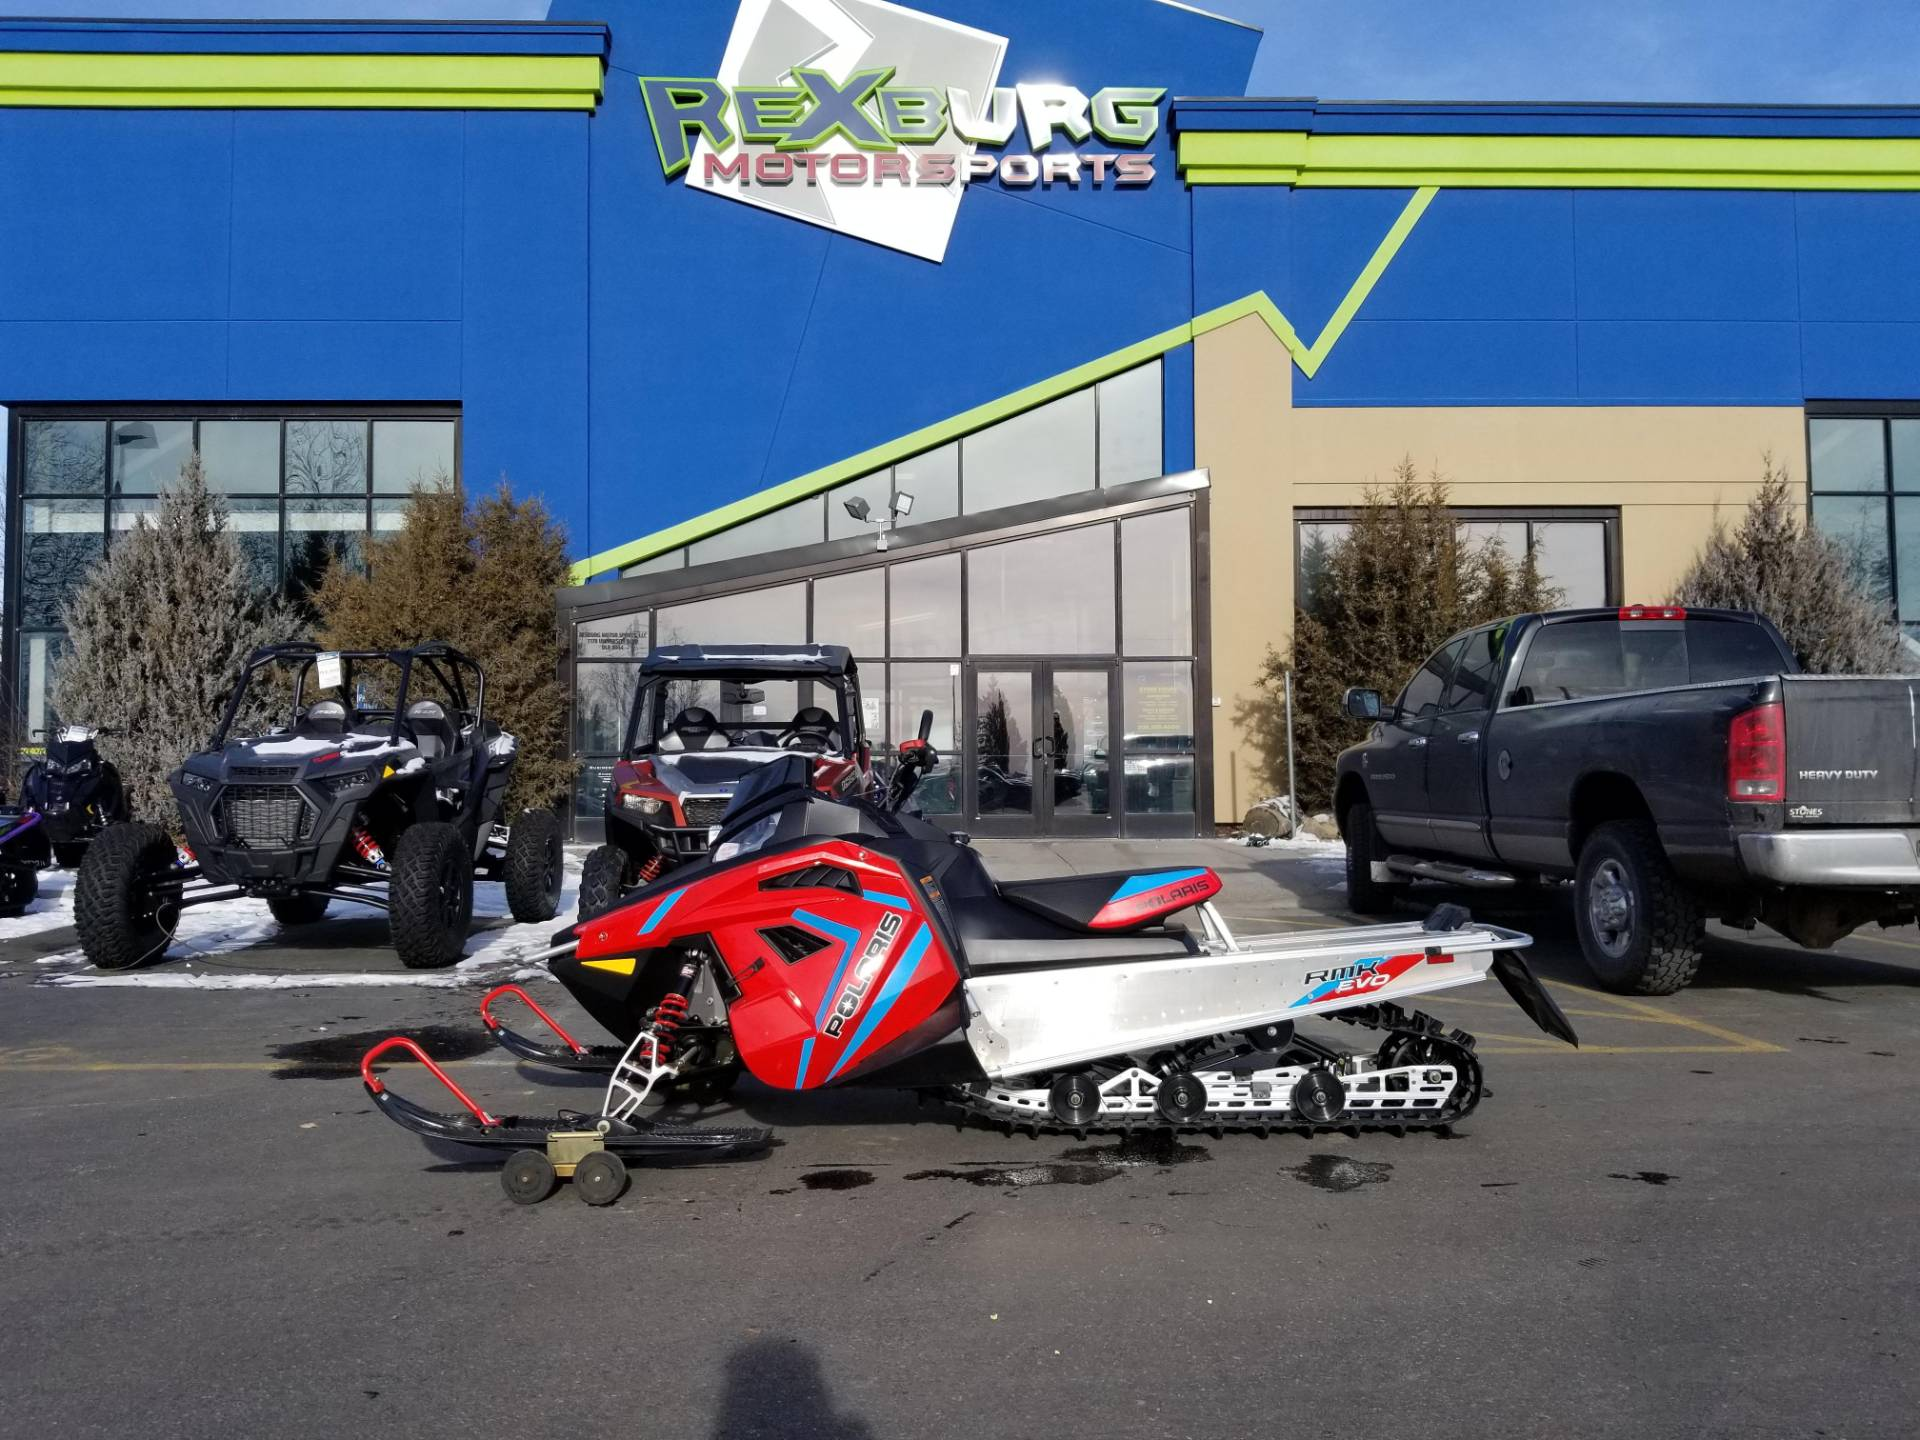 2020 Polaris 550 RMK EVO 144 ES in Rexburg, Idaho - Photo 1